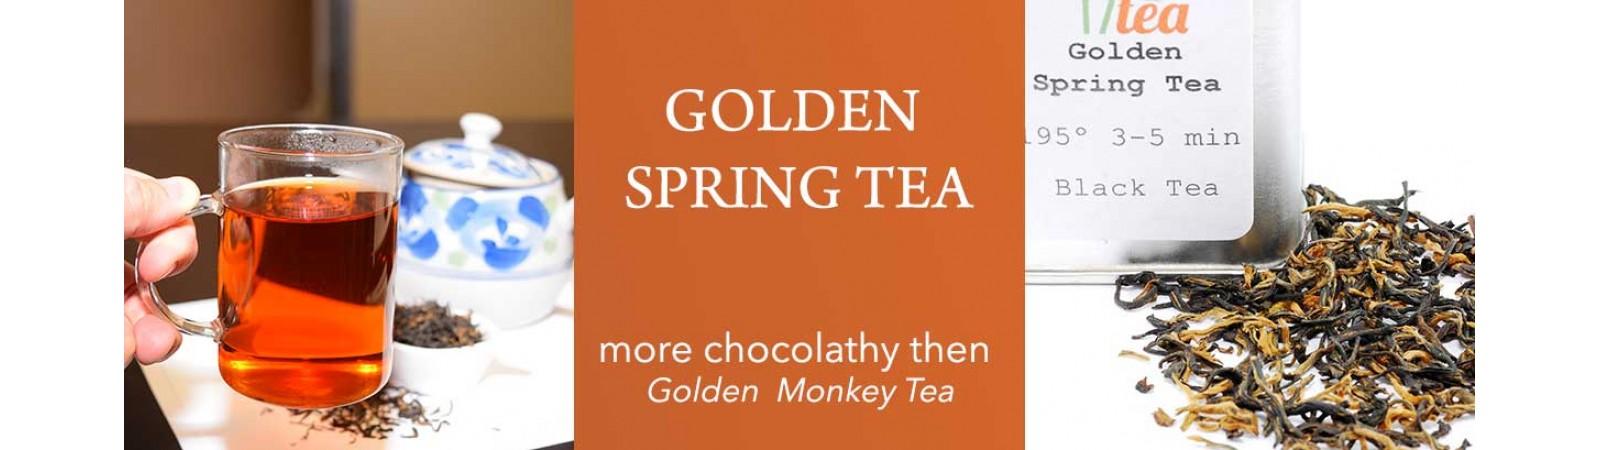 Golden Spring Tea